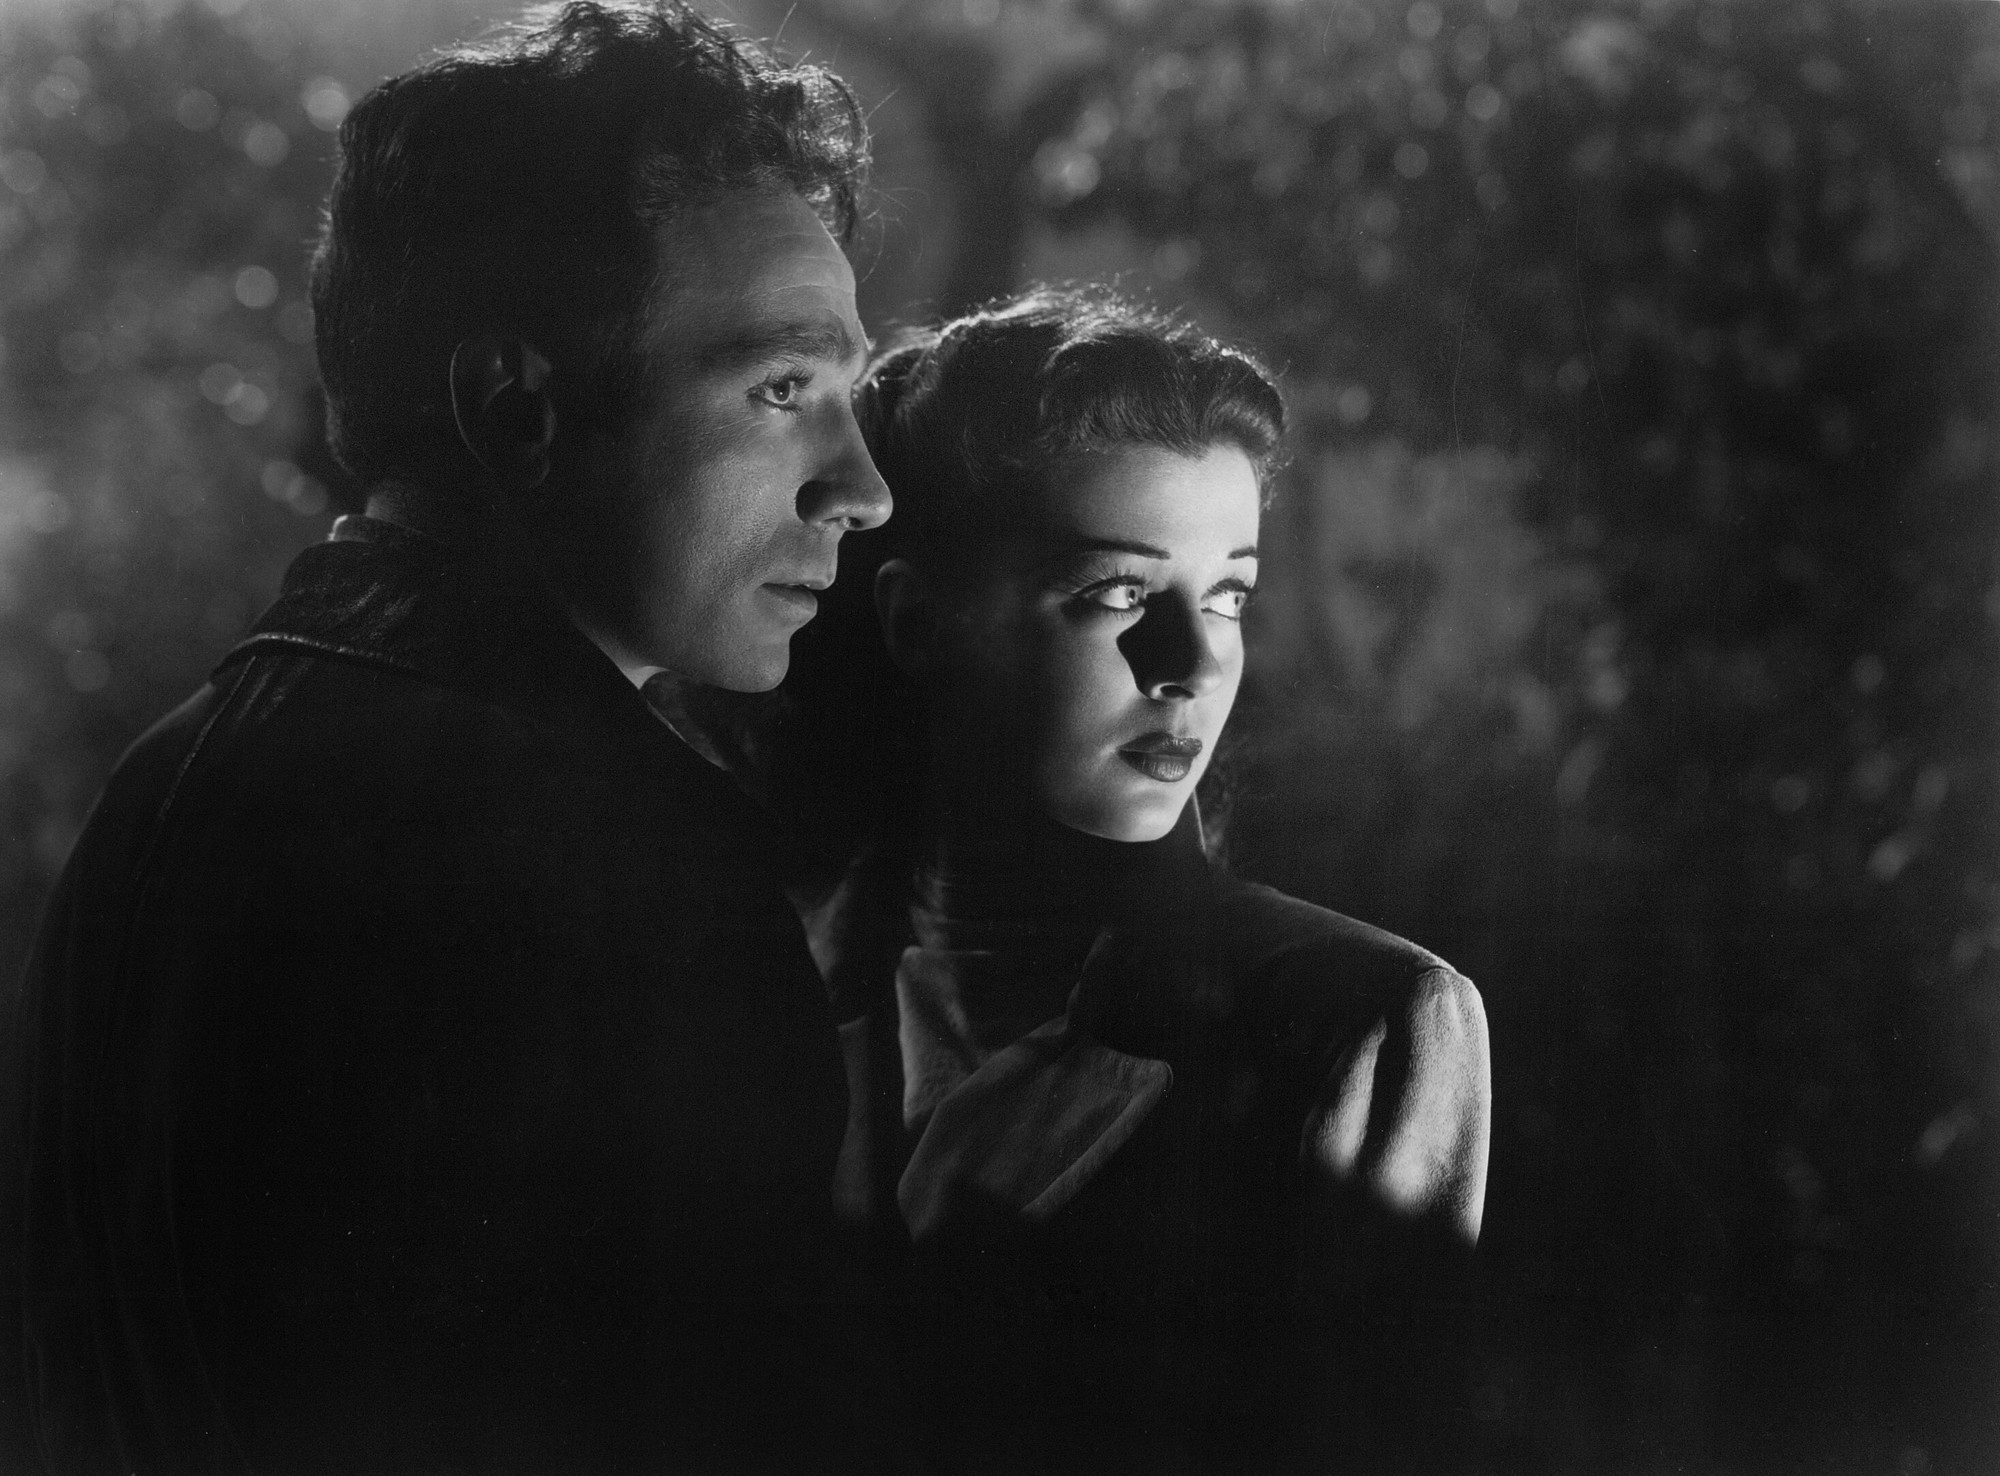 Moonrise. 1948. USA. Directed by Frank Borzage. Courtesy of Paramount Pictures/Photofest